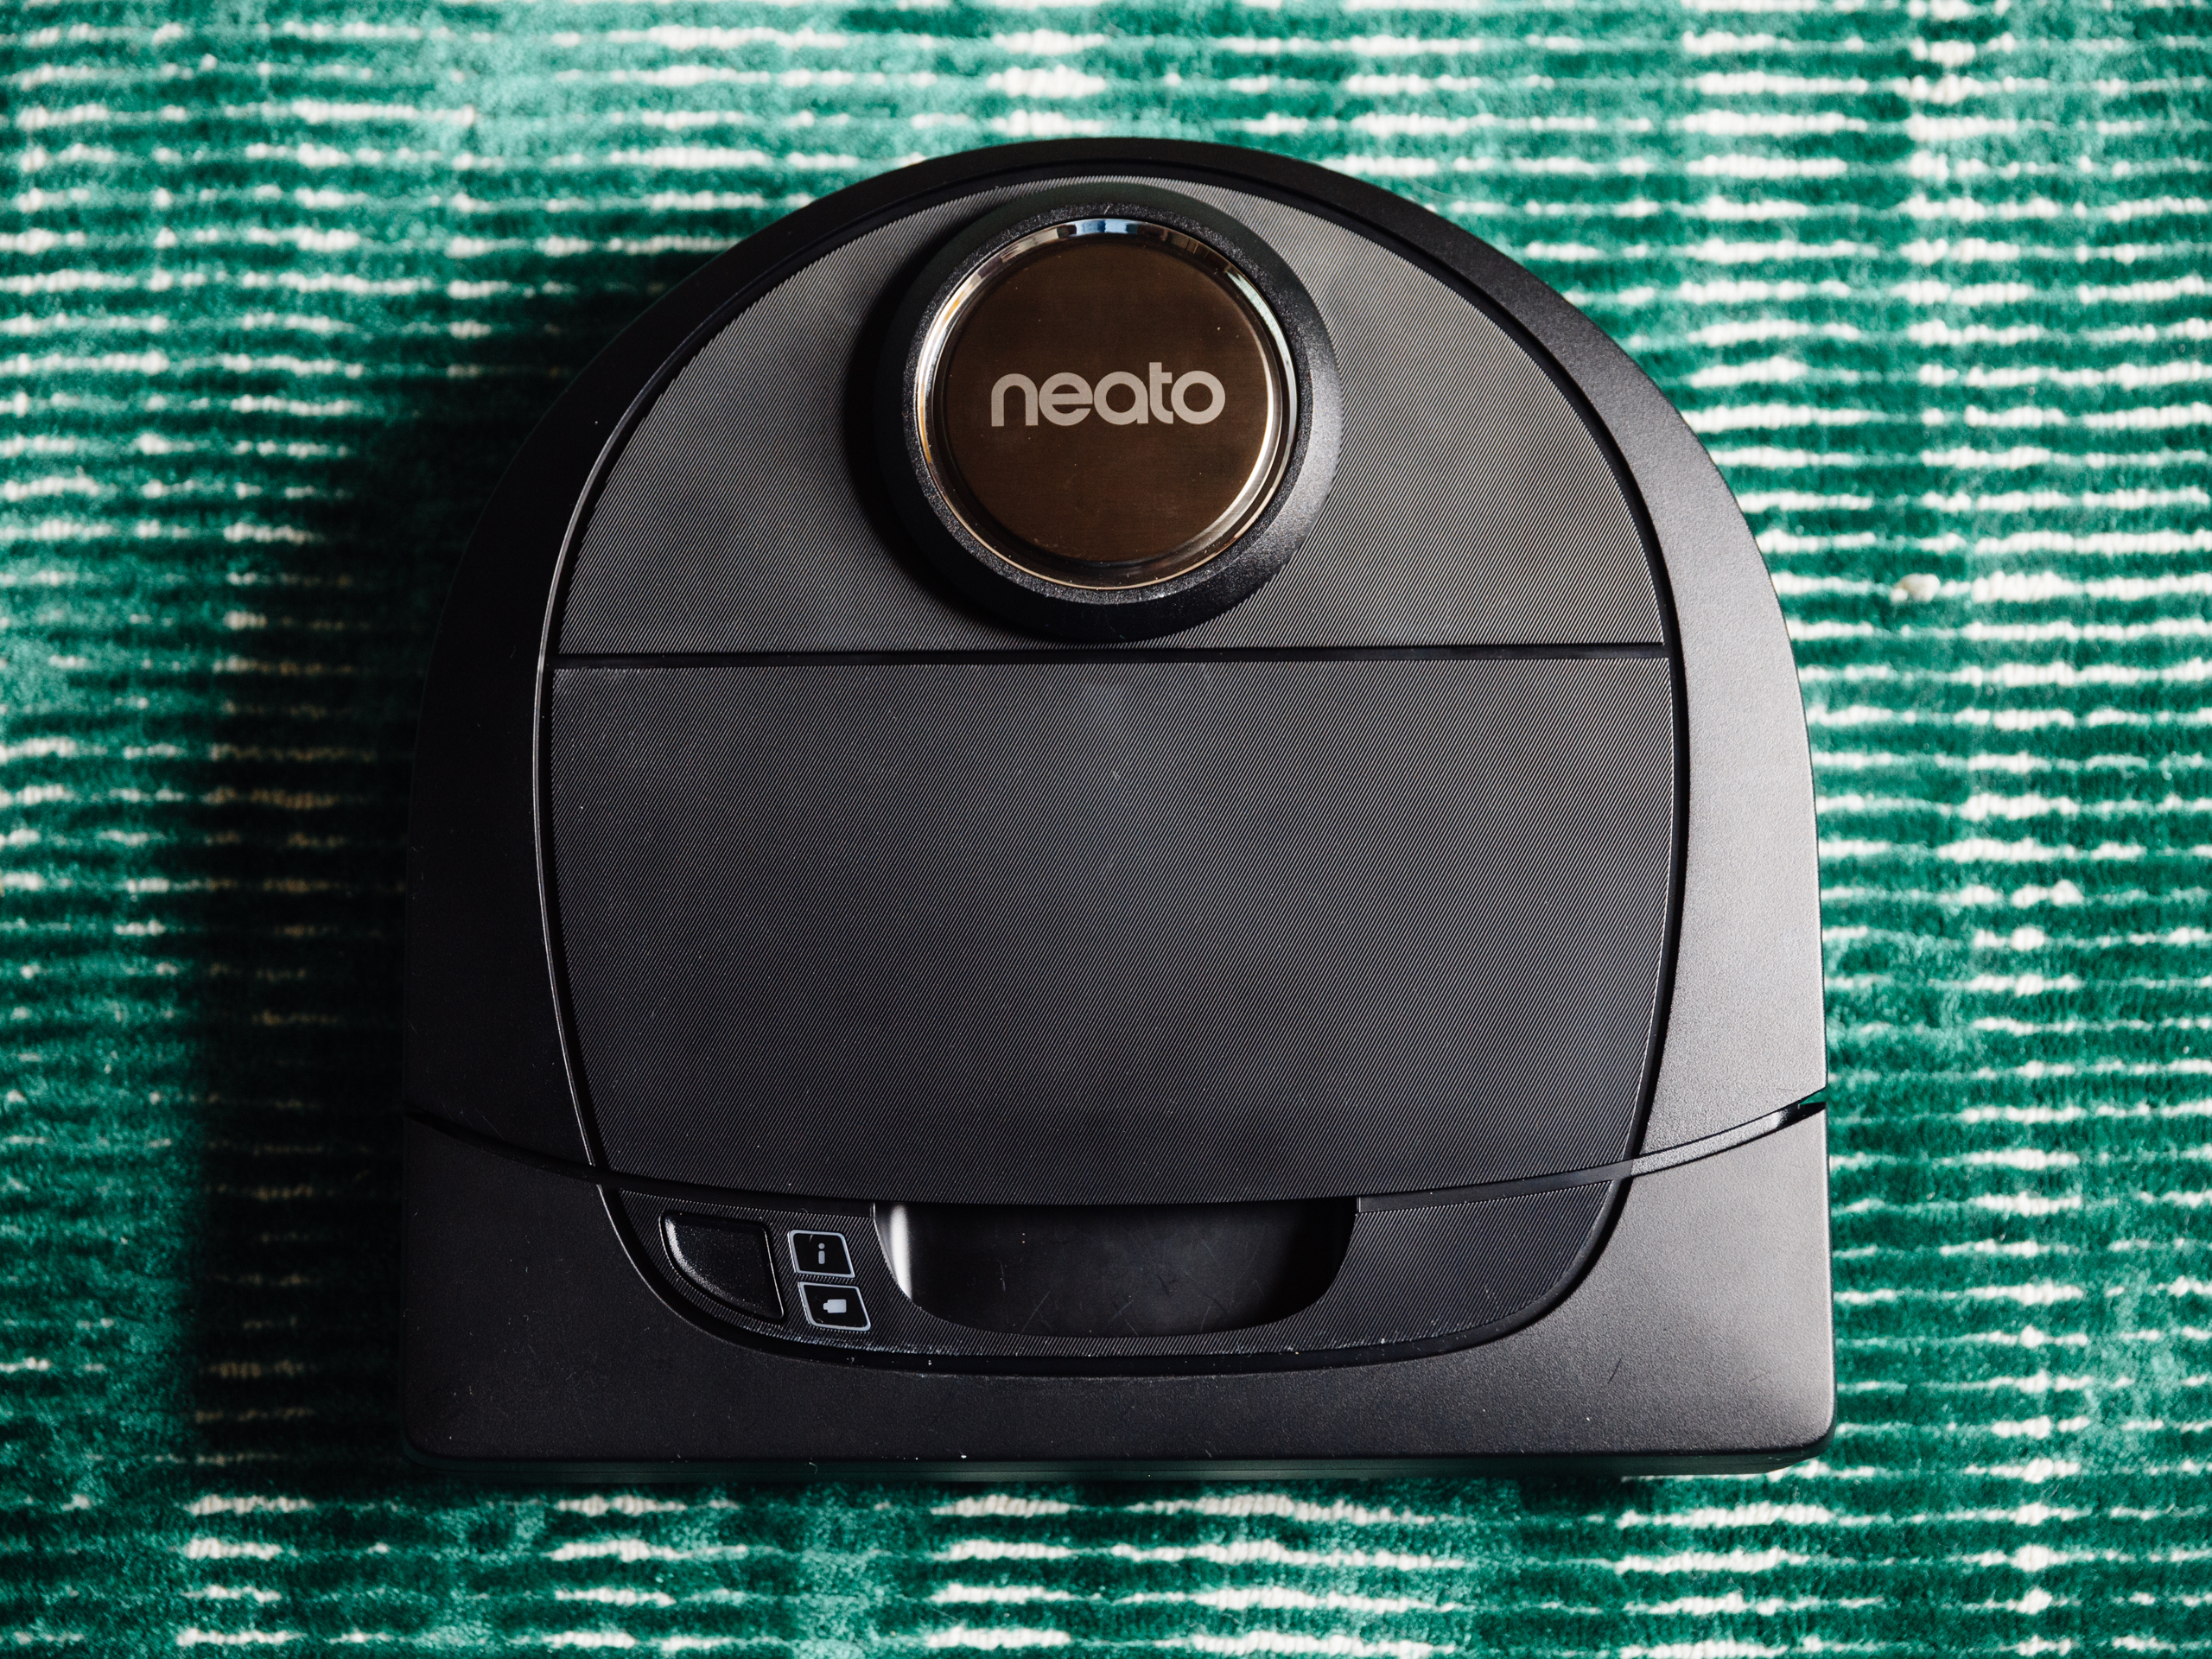 neato-botvac-d5-connected-product-photos-14.jpg